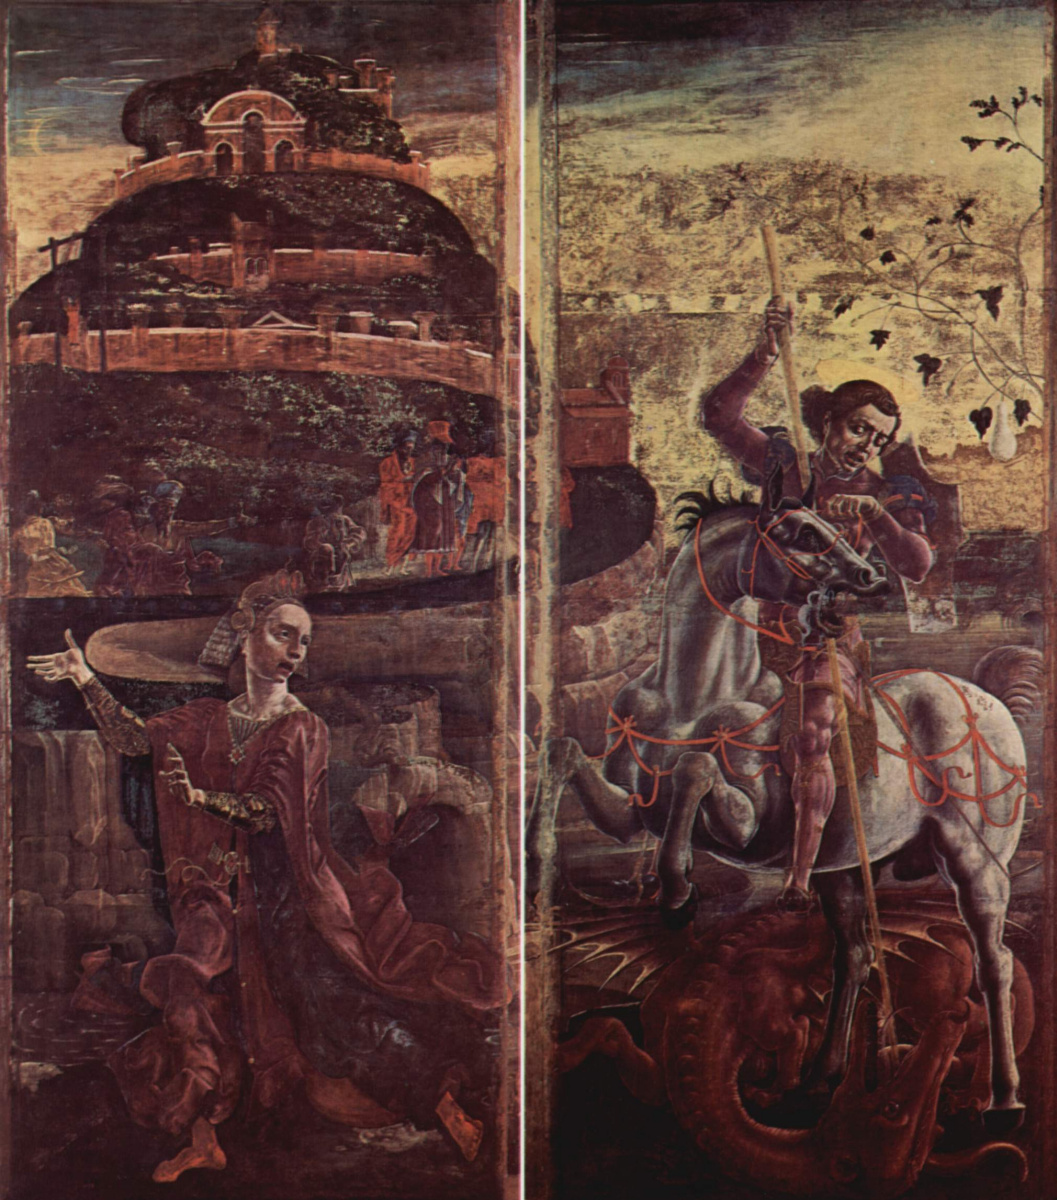 Cosimo Tour. Four fold organ of the Ferrara Cathedral with St George and the Annunciation. The Princess and St. George defeating the dragon